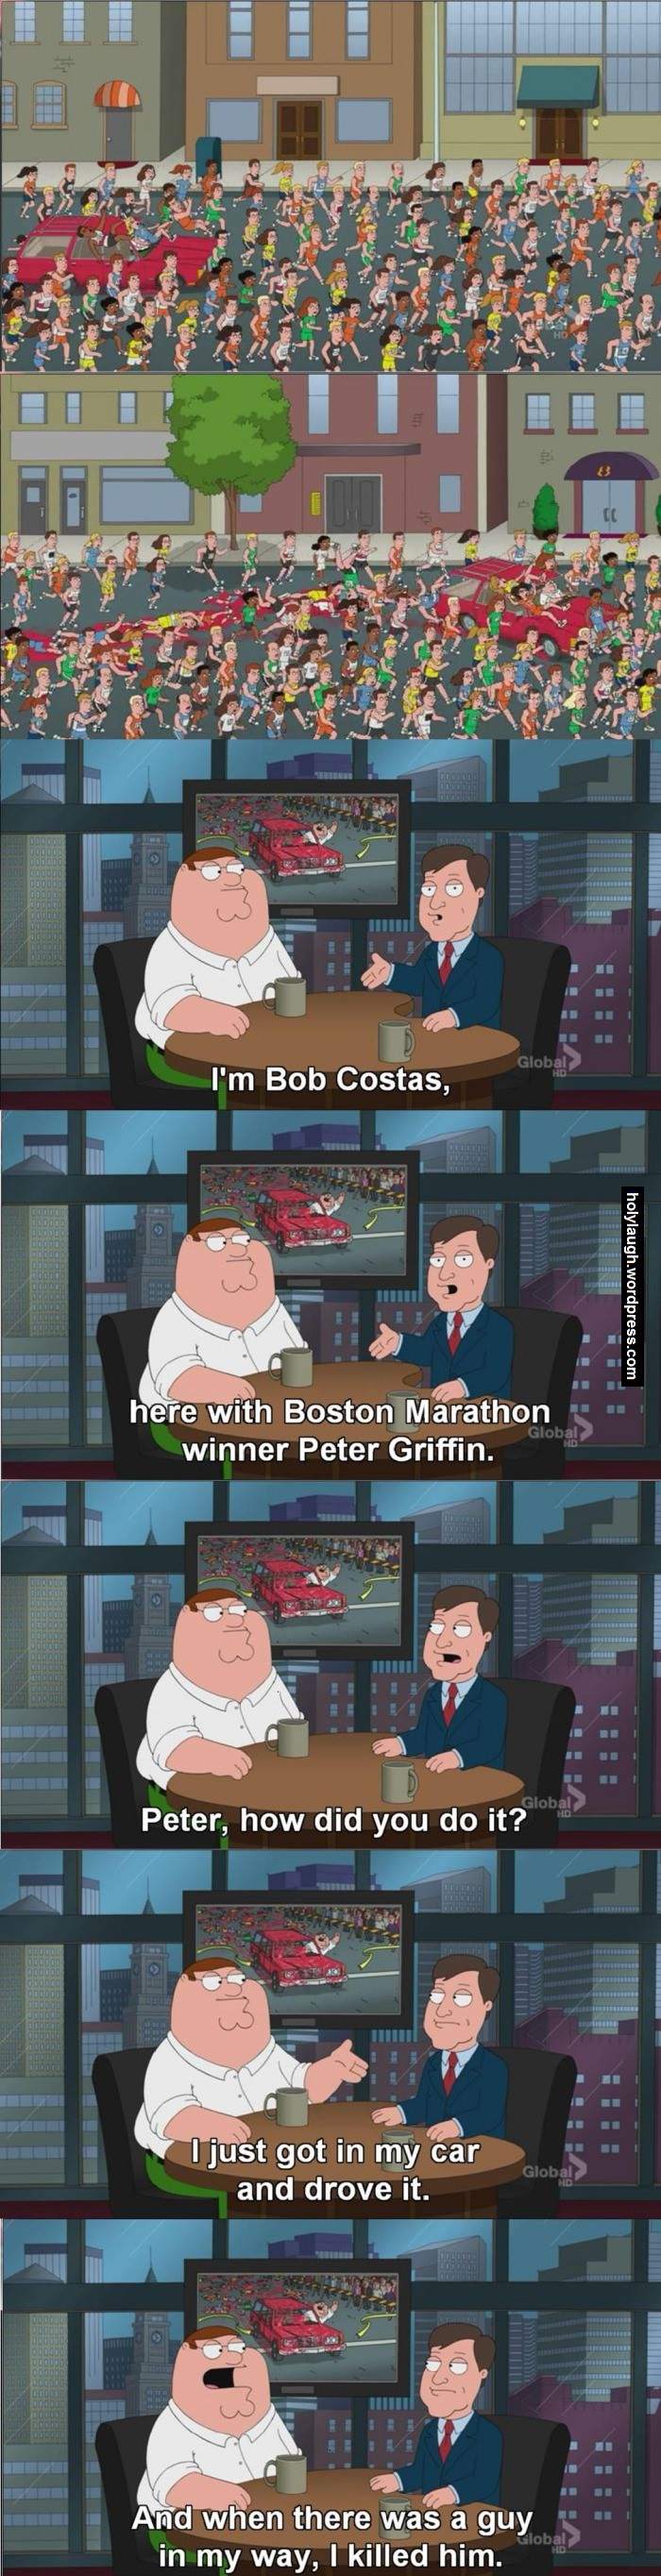 Peter Griffin marathon winner